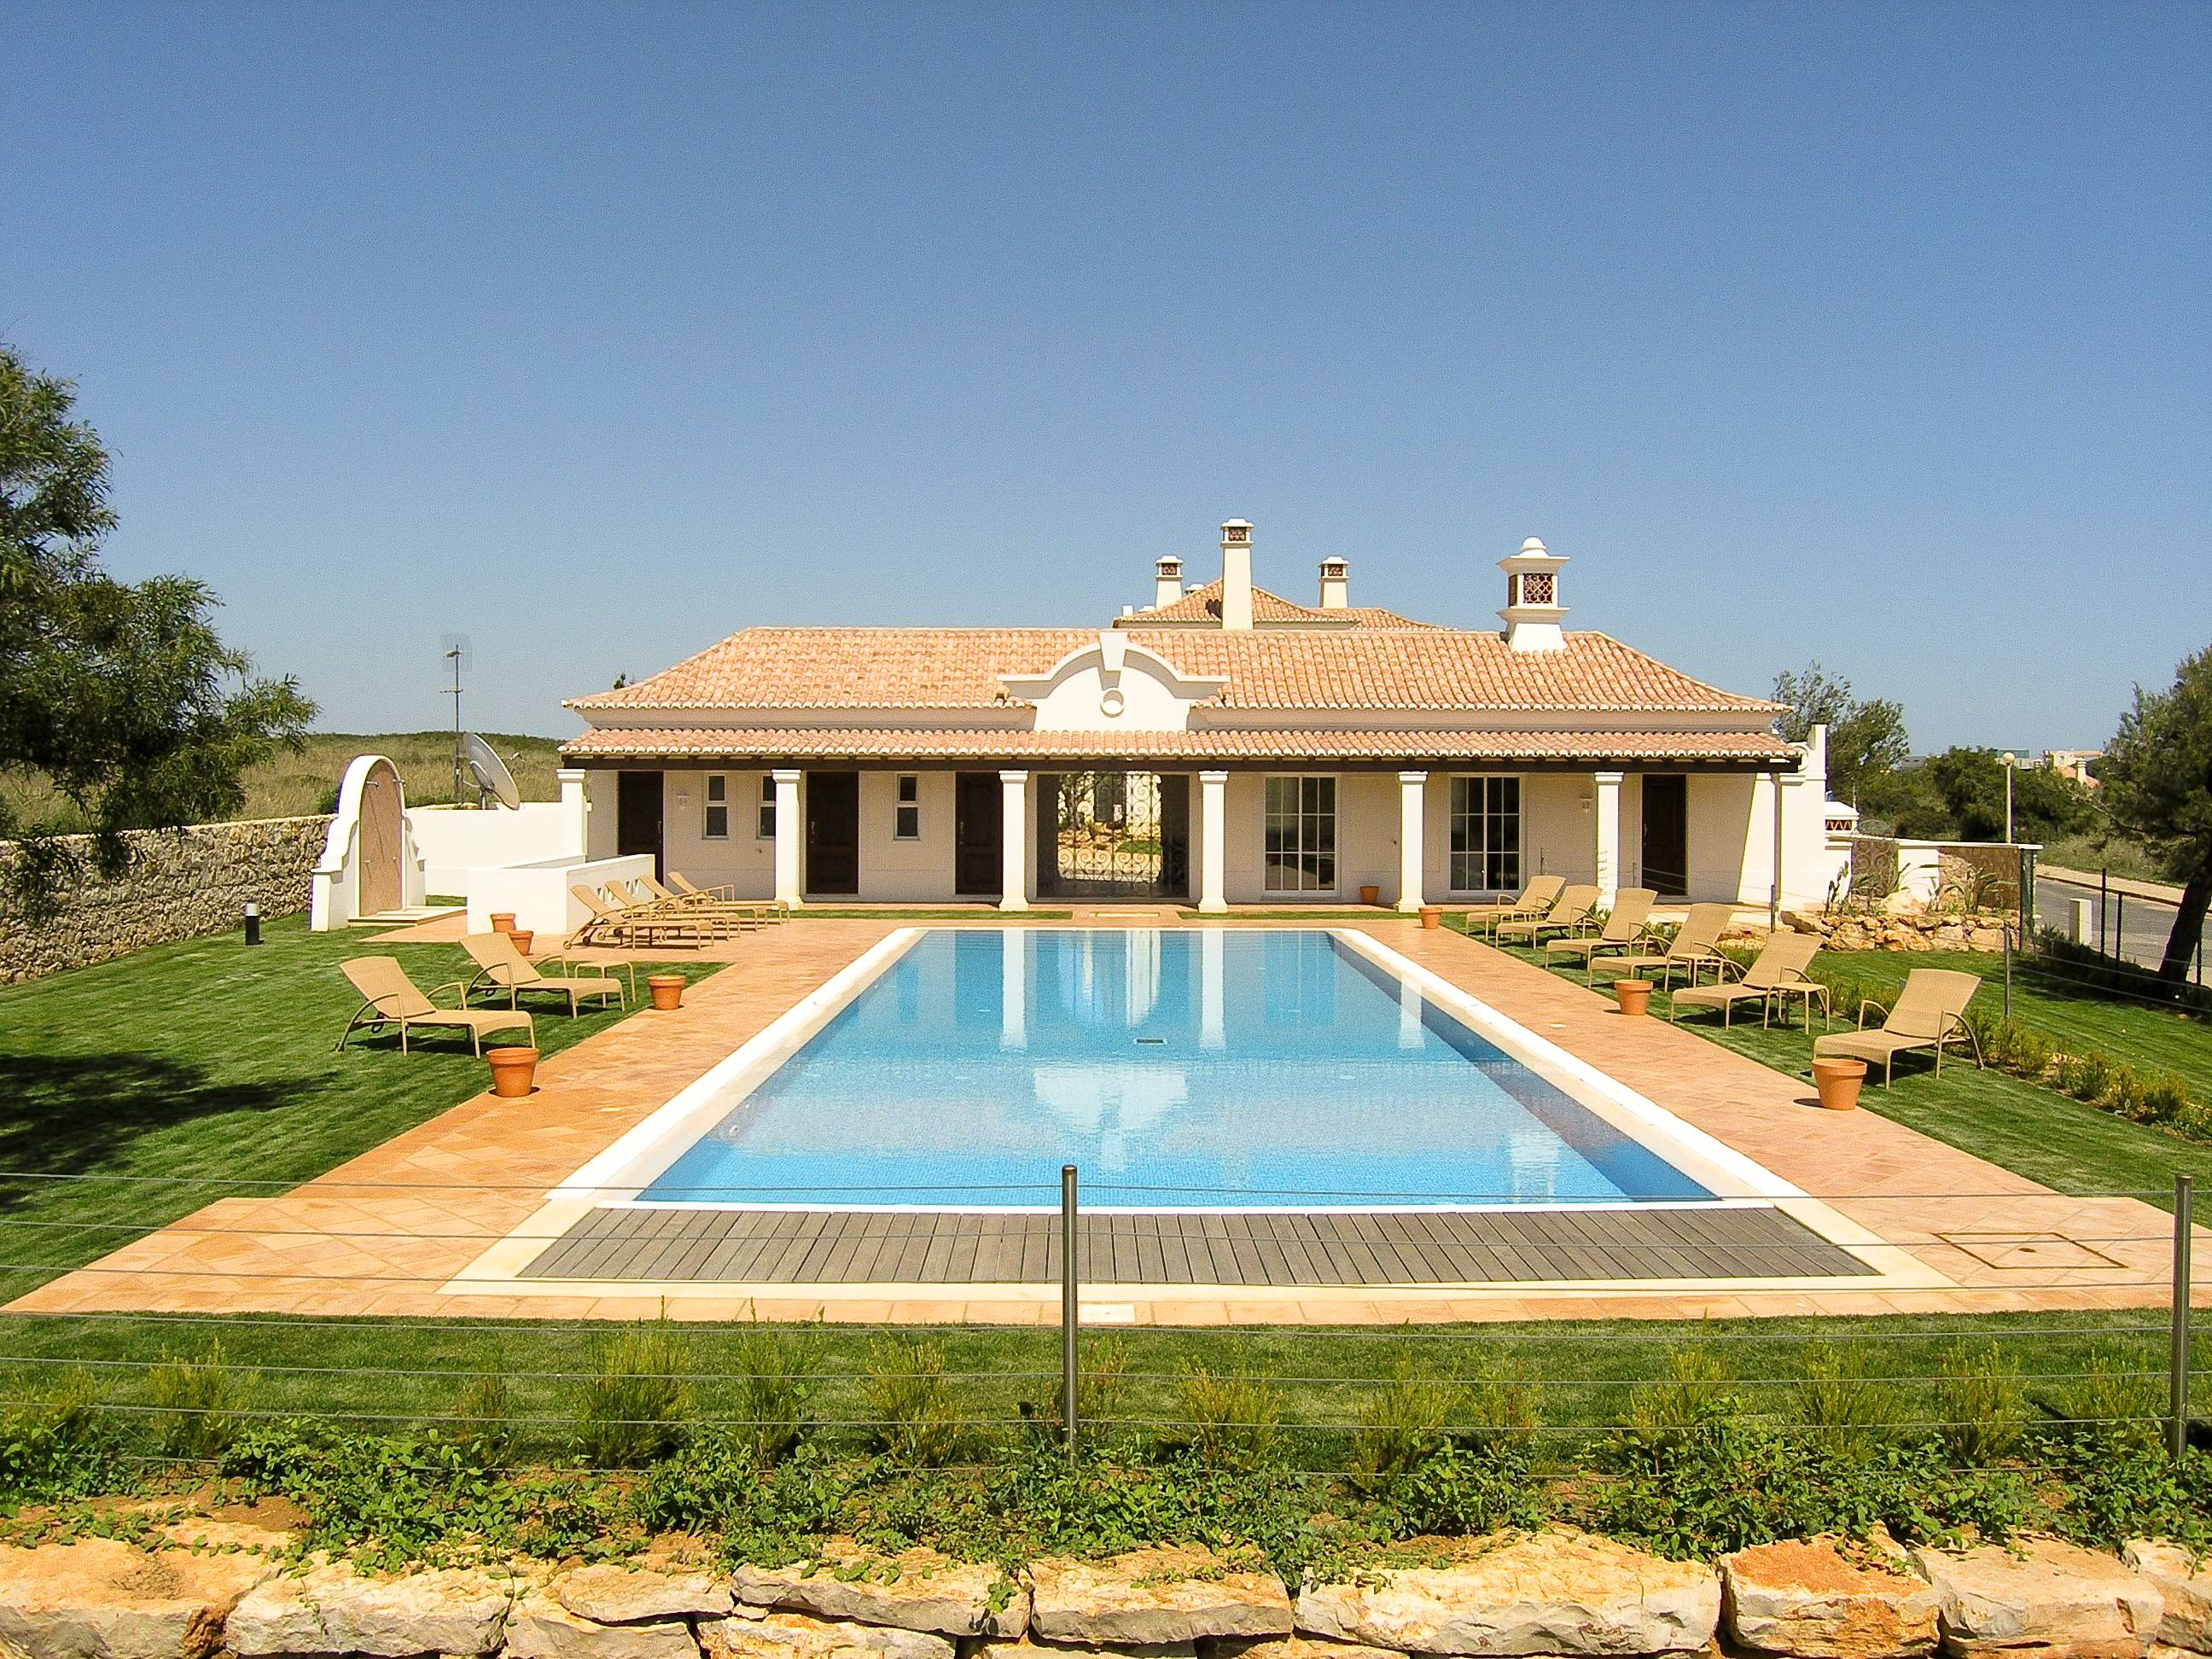 Martinhal Vilas Mimosa Two Bedroom, 2 bedroom villa in Martinhal Sagres, Algarve Photo #1